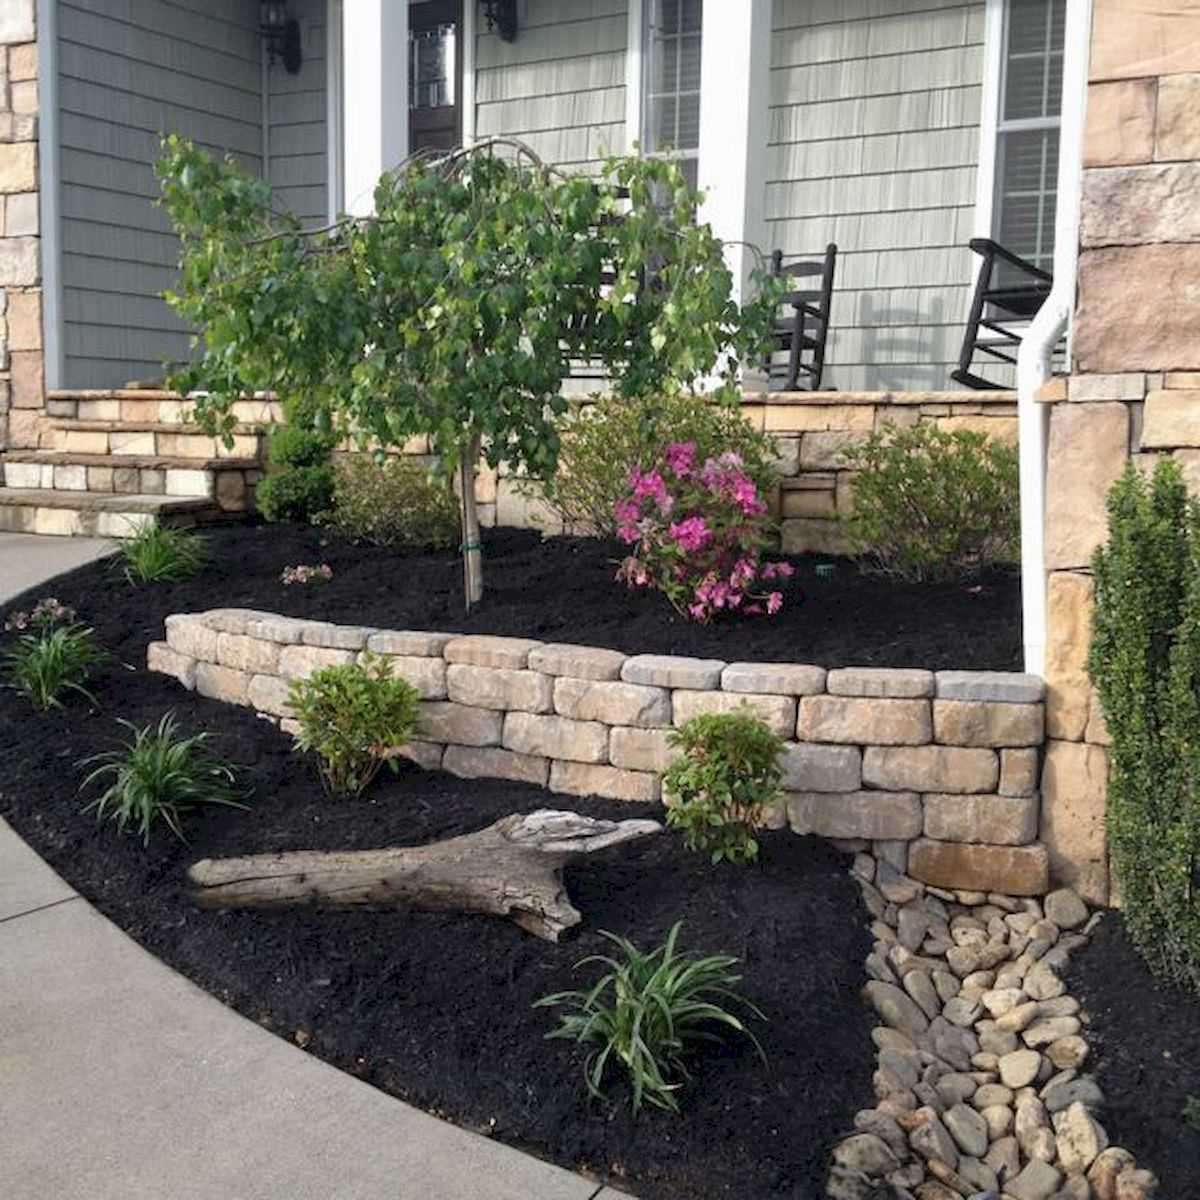 35 Inspiring Retaining Wall Ideas Uses That Will Blow Your Mind Homelovers Concrete Retaining Walls Fence Design Wood Trellis